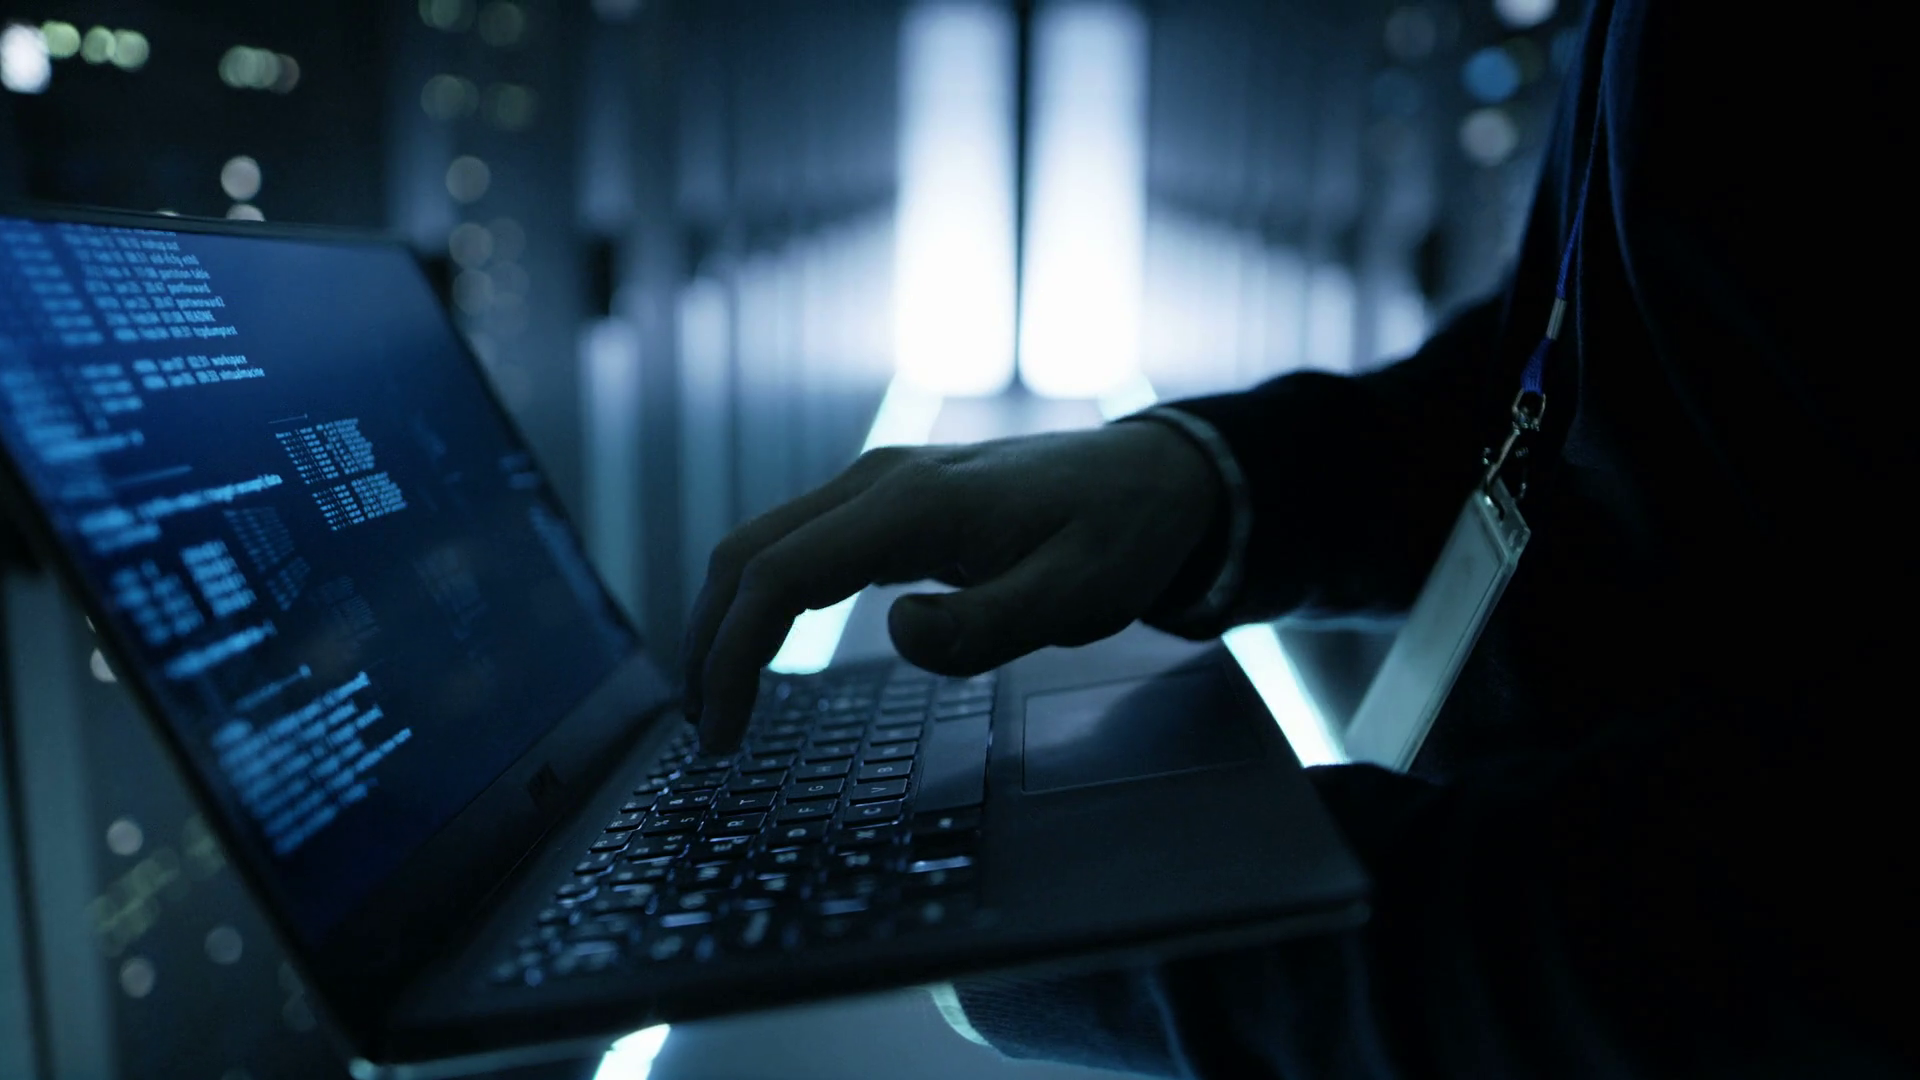 videoblocks-it-specialist-working-working-on-a-laptop-hes-employee-of-big-ultramodern-data-center-shot-on-red-epic-w-8k-helium-cinema-camera_btrh9p83l_thumbnail-full01.png